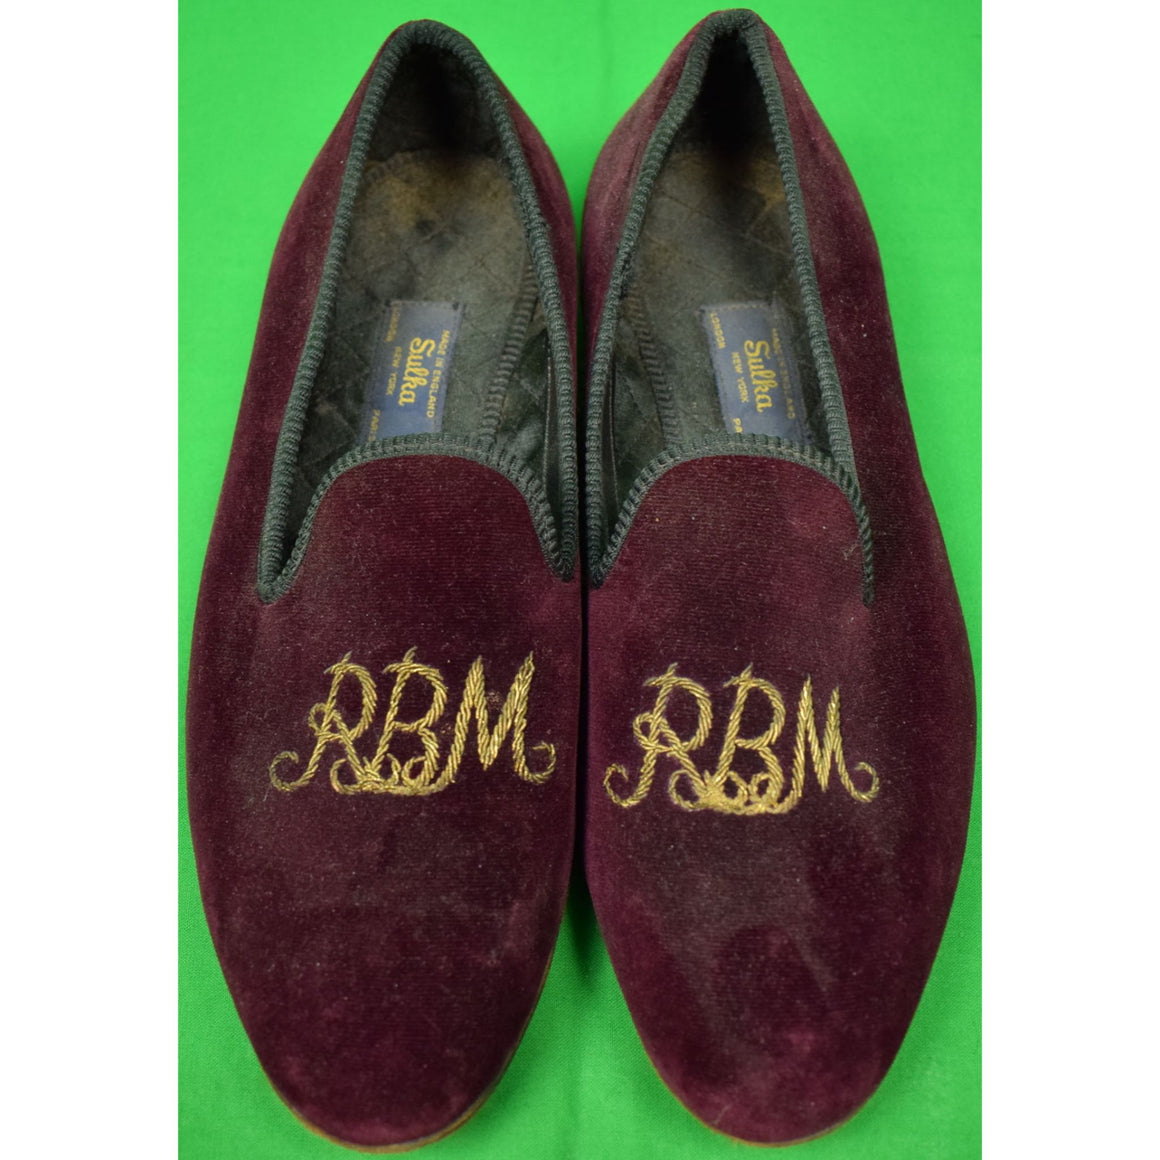 Sulka Claret Velvet English Slippers w/ RBM Monogram